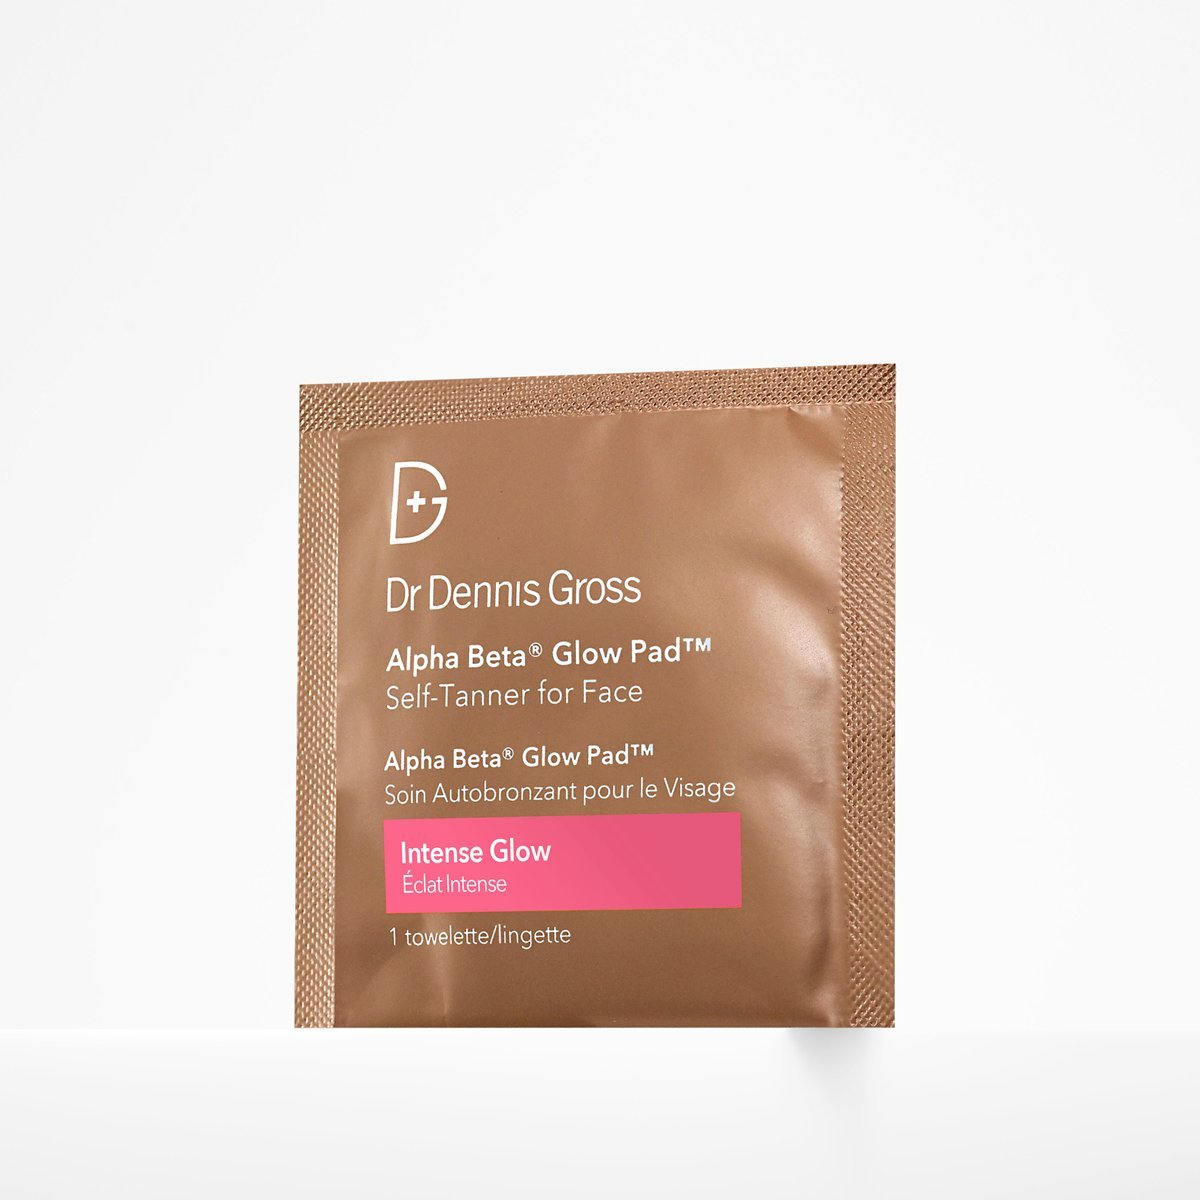 Dr. Dennis Gross Alpha Beta Glow Pad Self-Tanner for Face | Gradual Glow - 20 Towelettes .07 fLoZ / 2.2 mL each Fab Products 66407